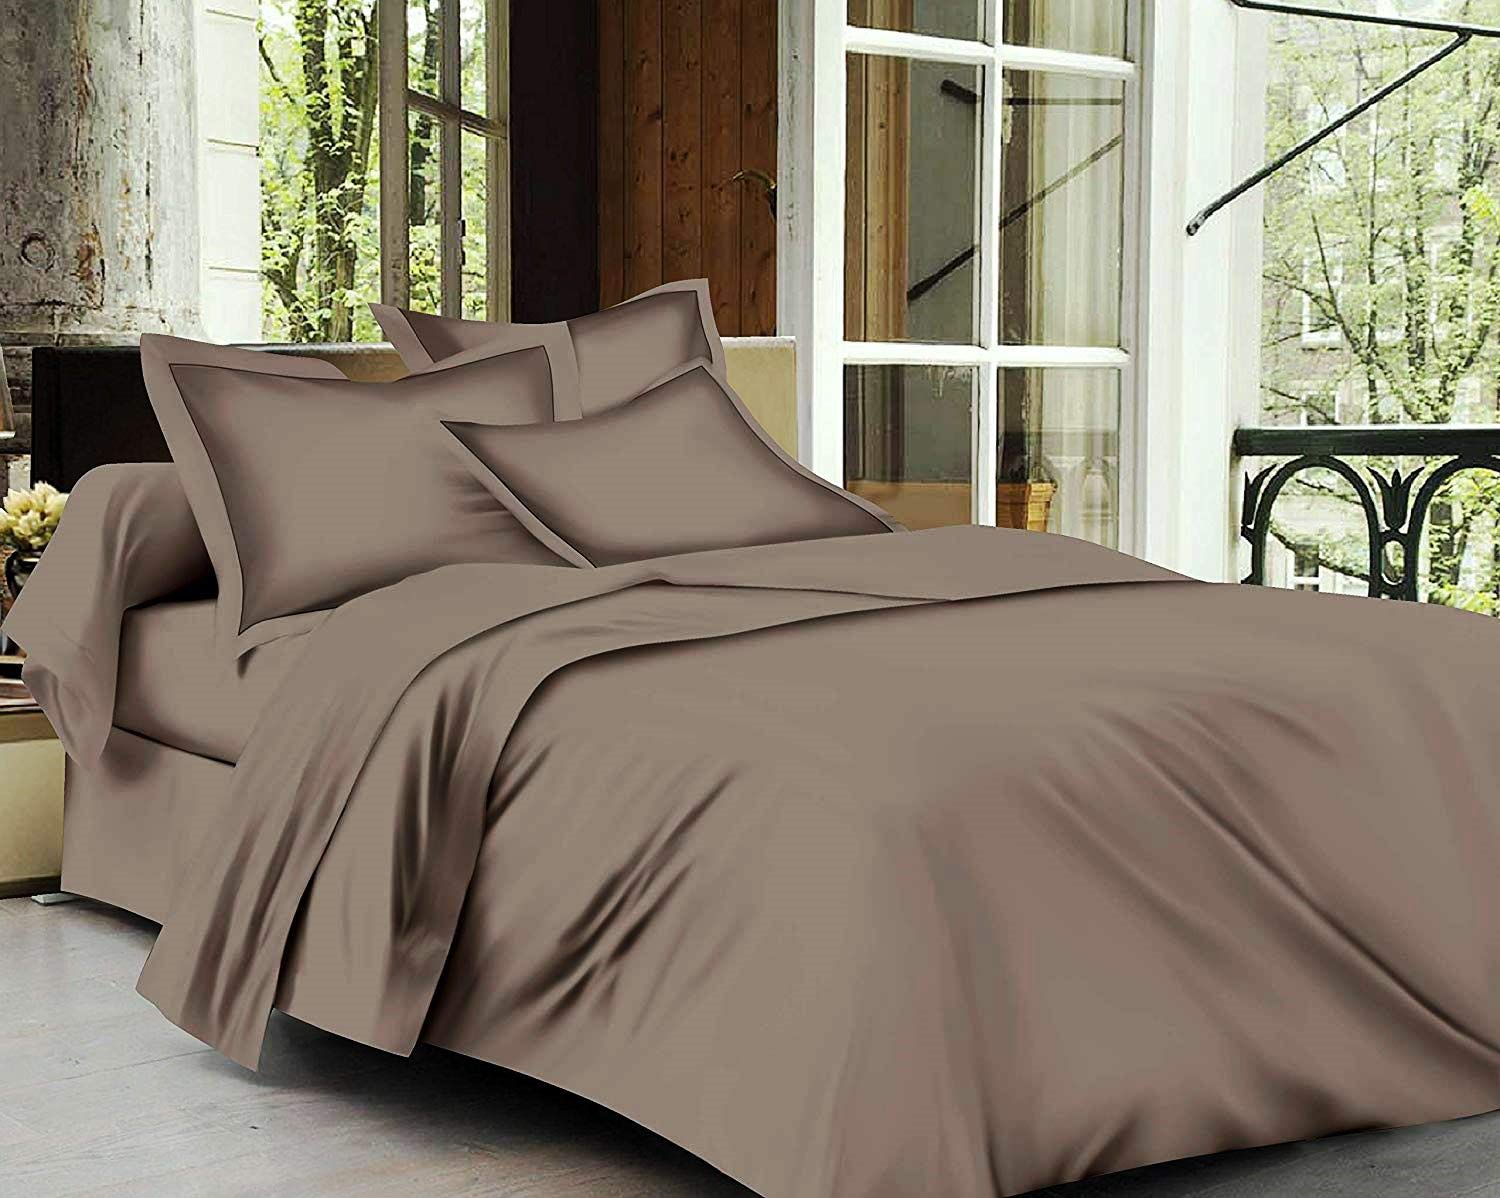 Trance Home Linen Cotton 400TC Plain Bed Sheet with Pillow Cover-Brown Grey